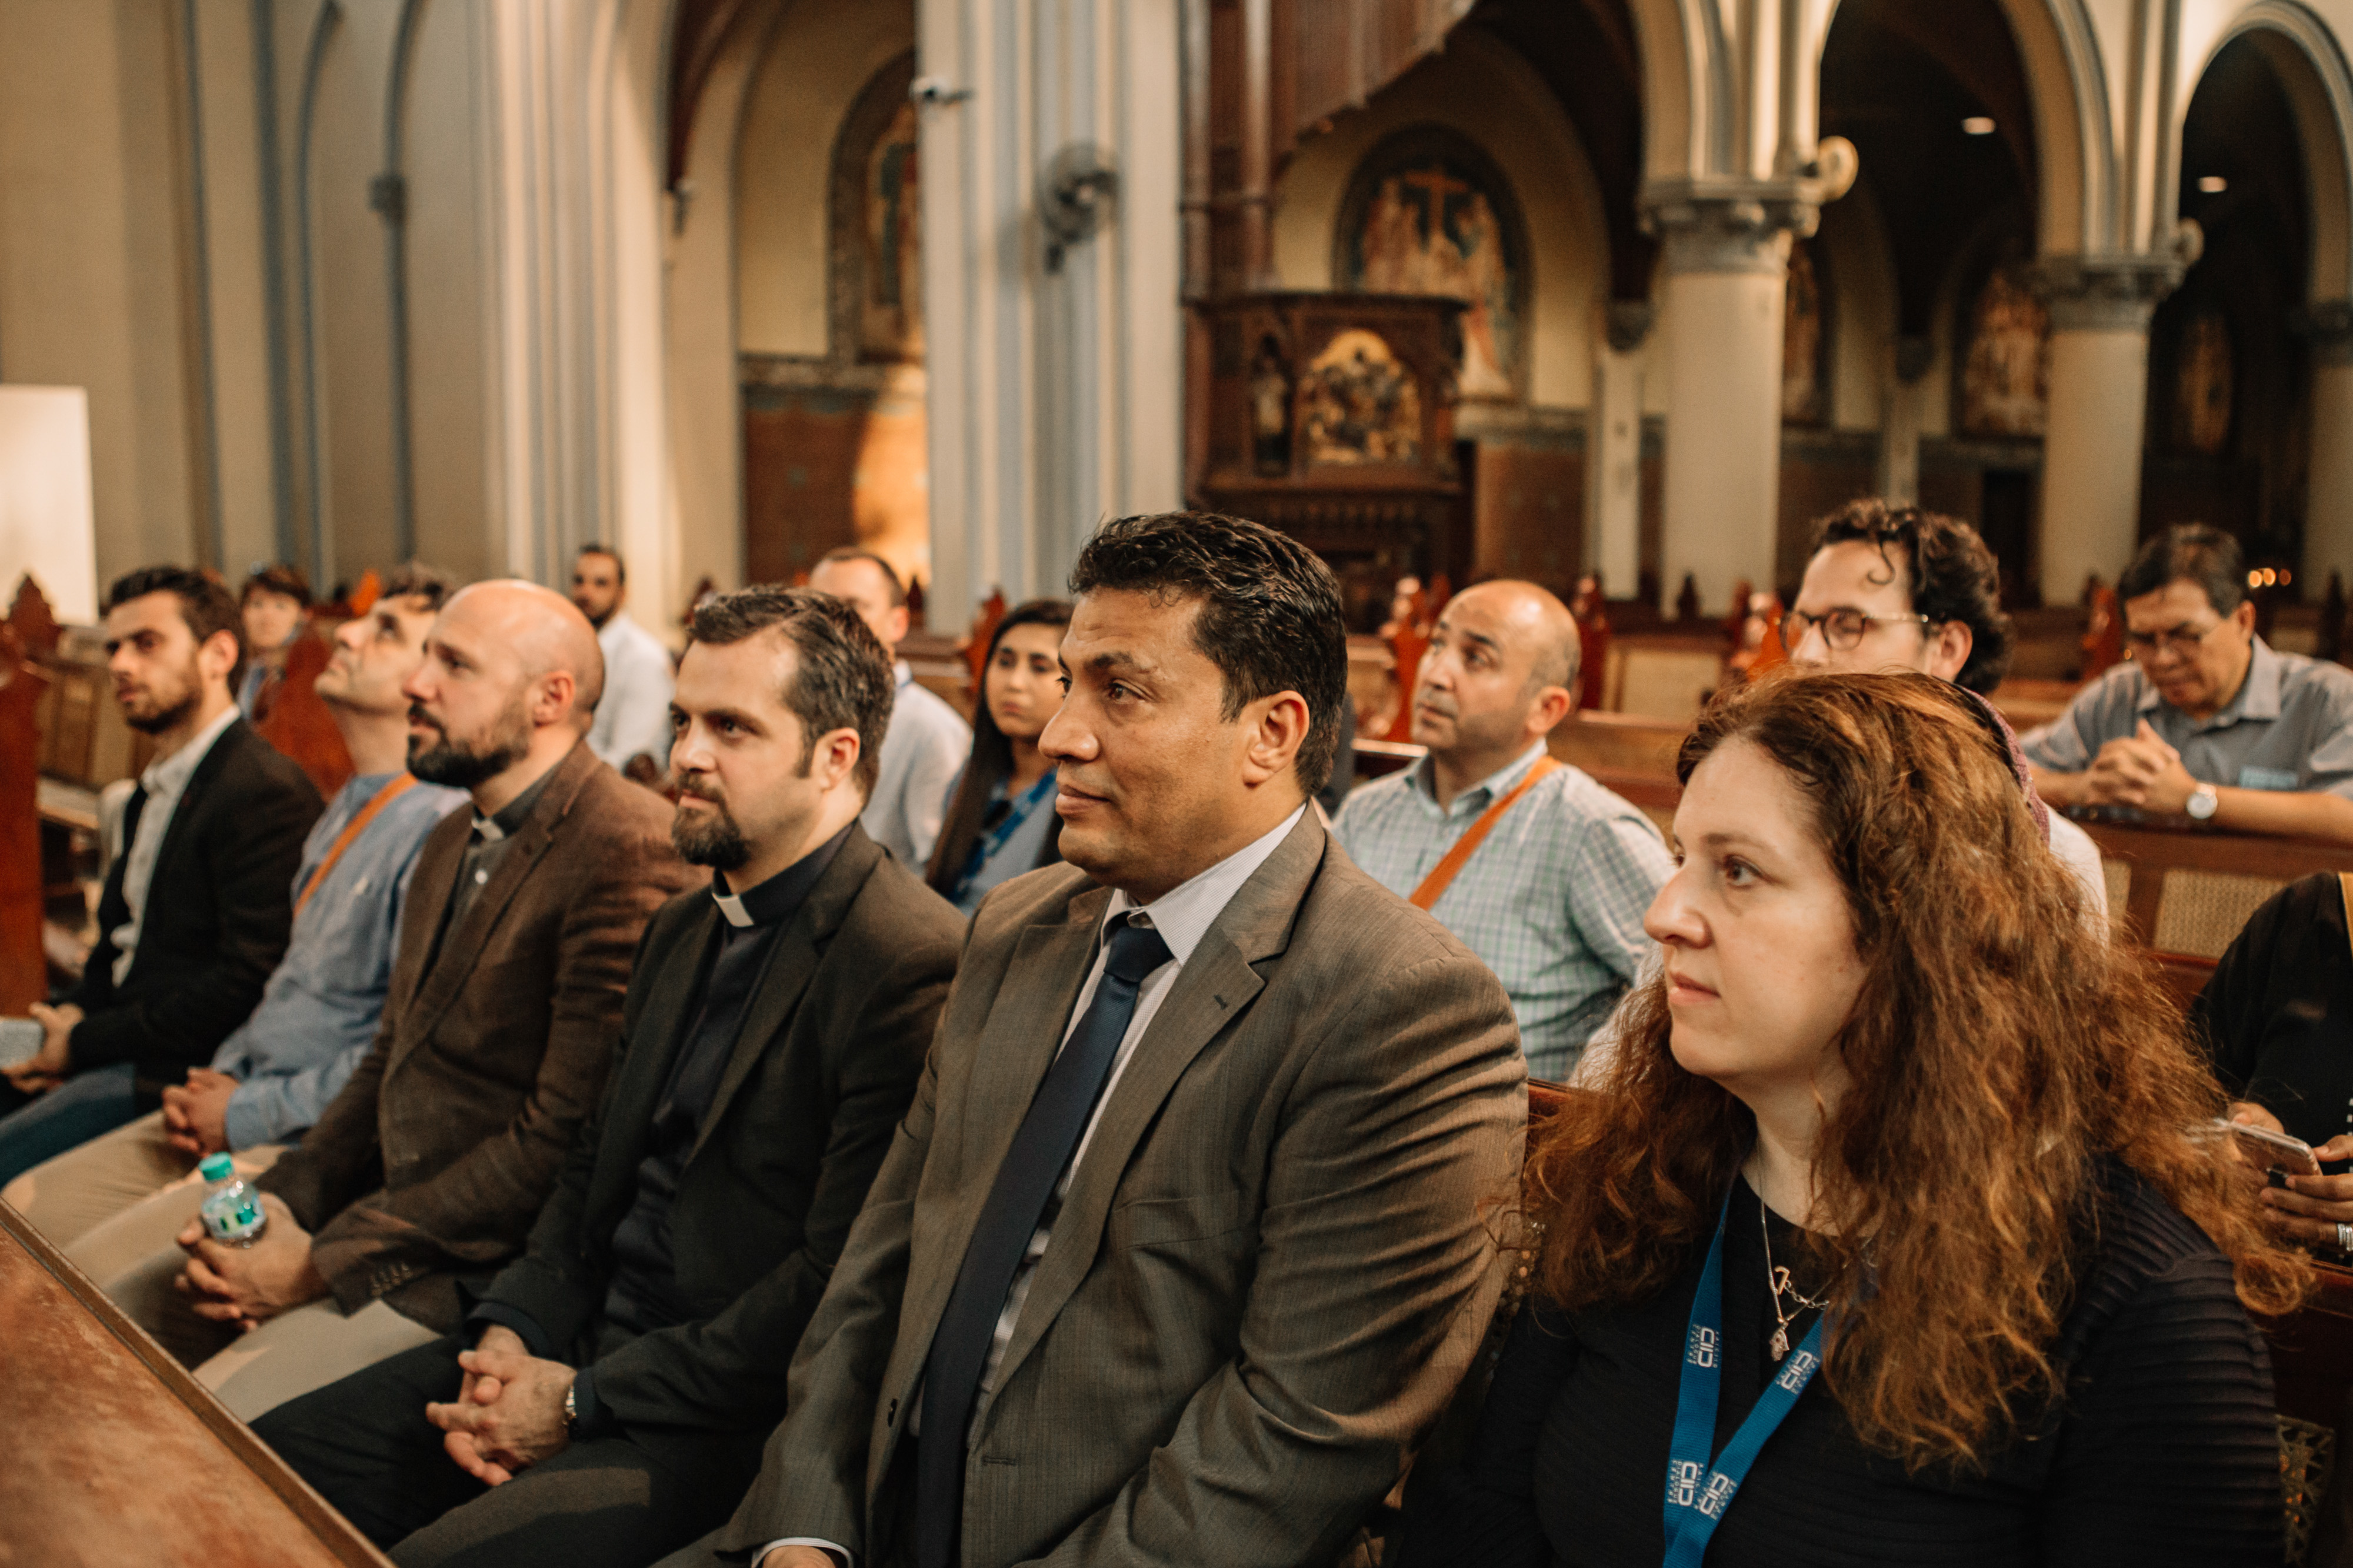 A group of KAICIID Fellows sit together in a cathedral